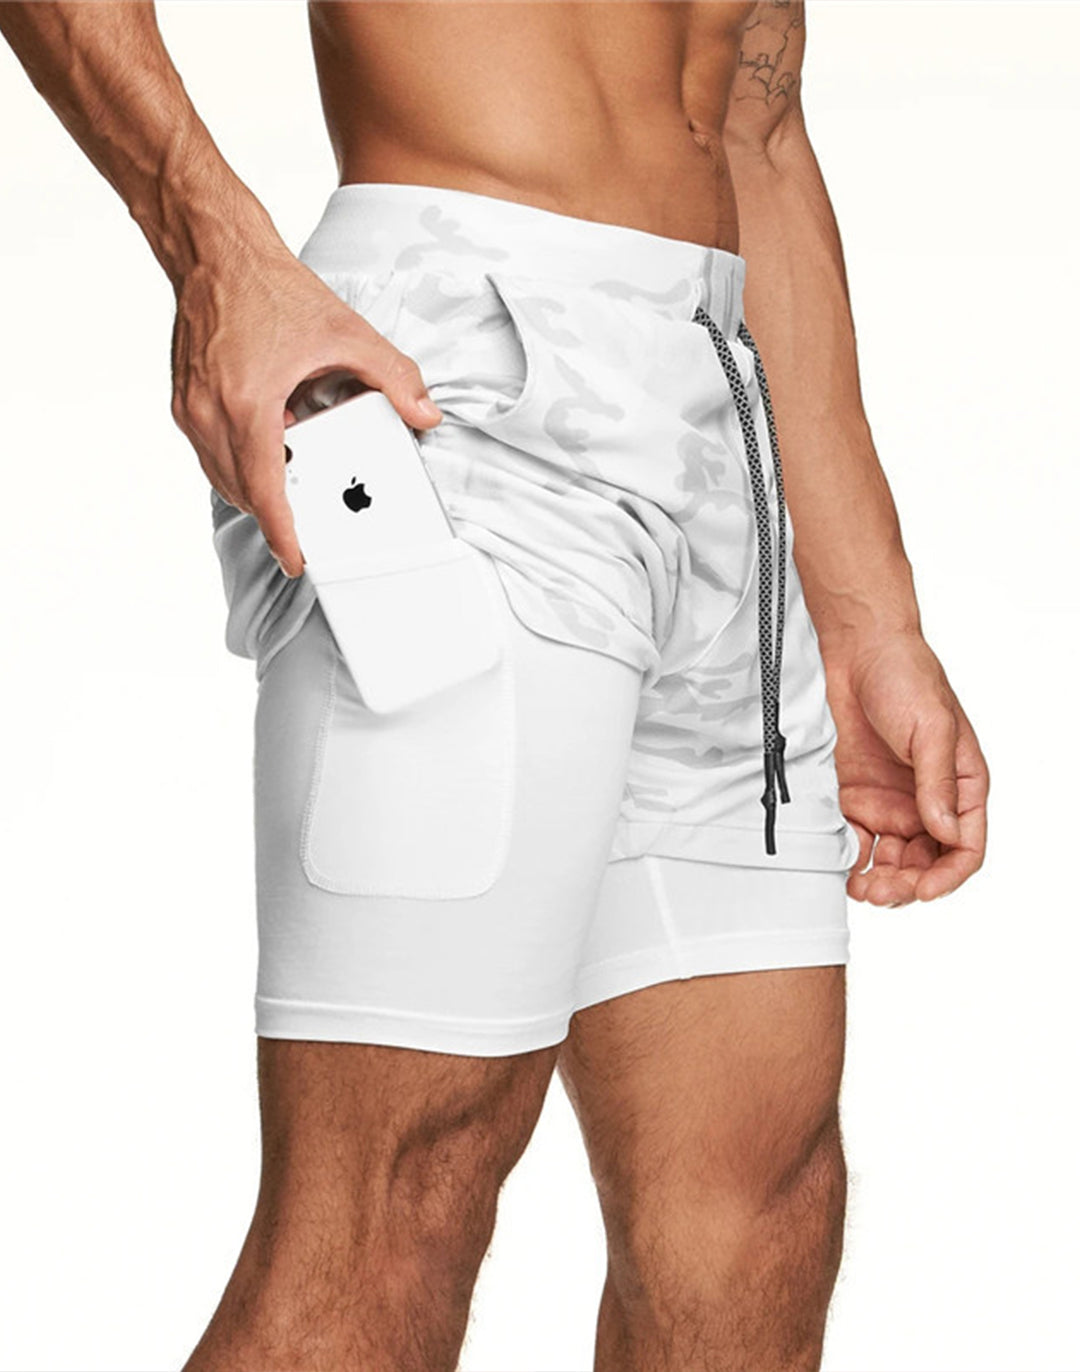 [Buy 3 Get 1 Free ]2-in-1 Secure Pocket Shorts